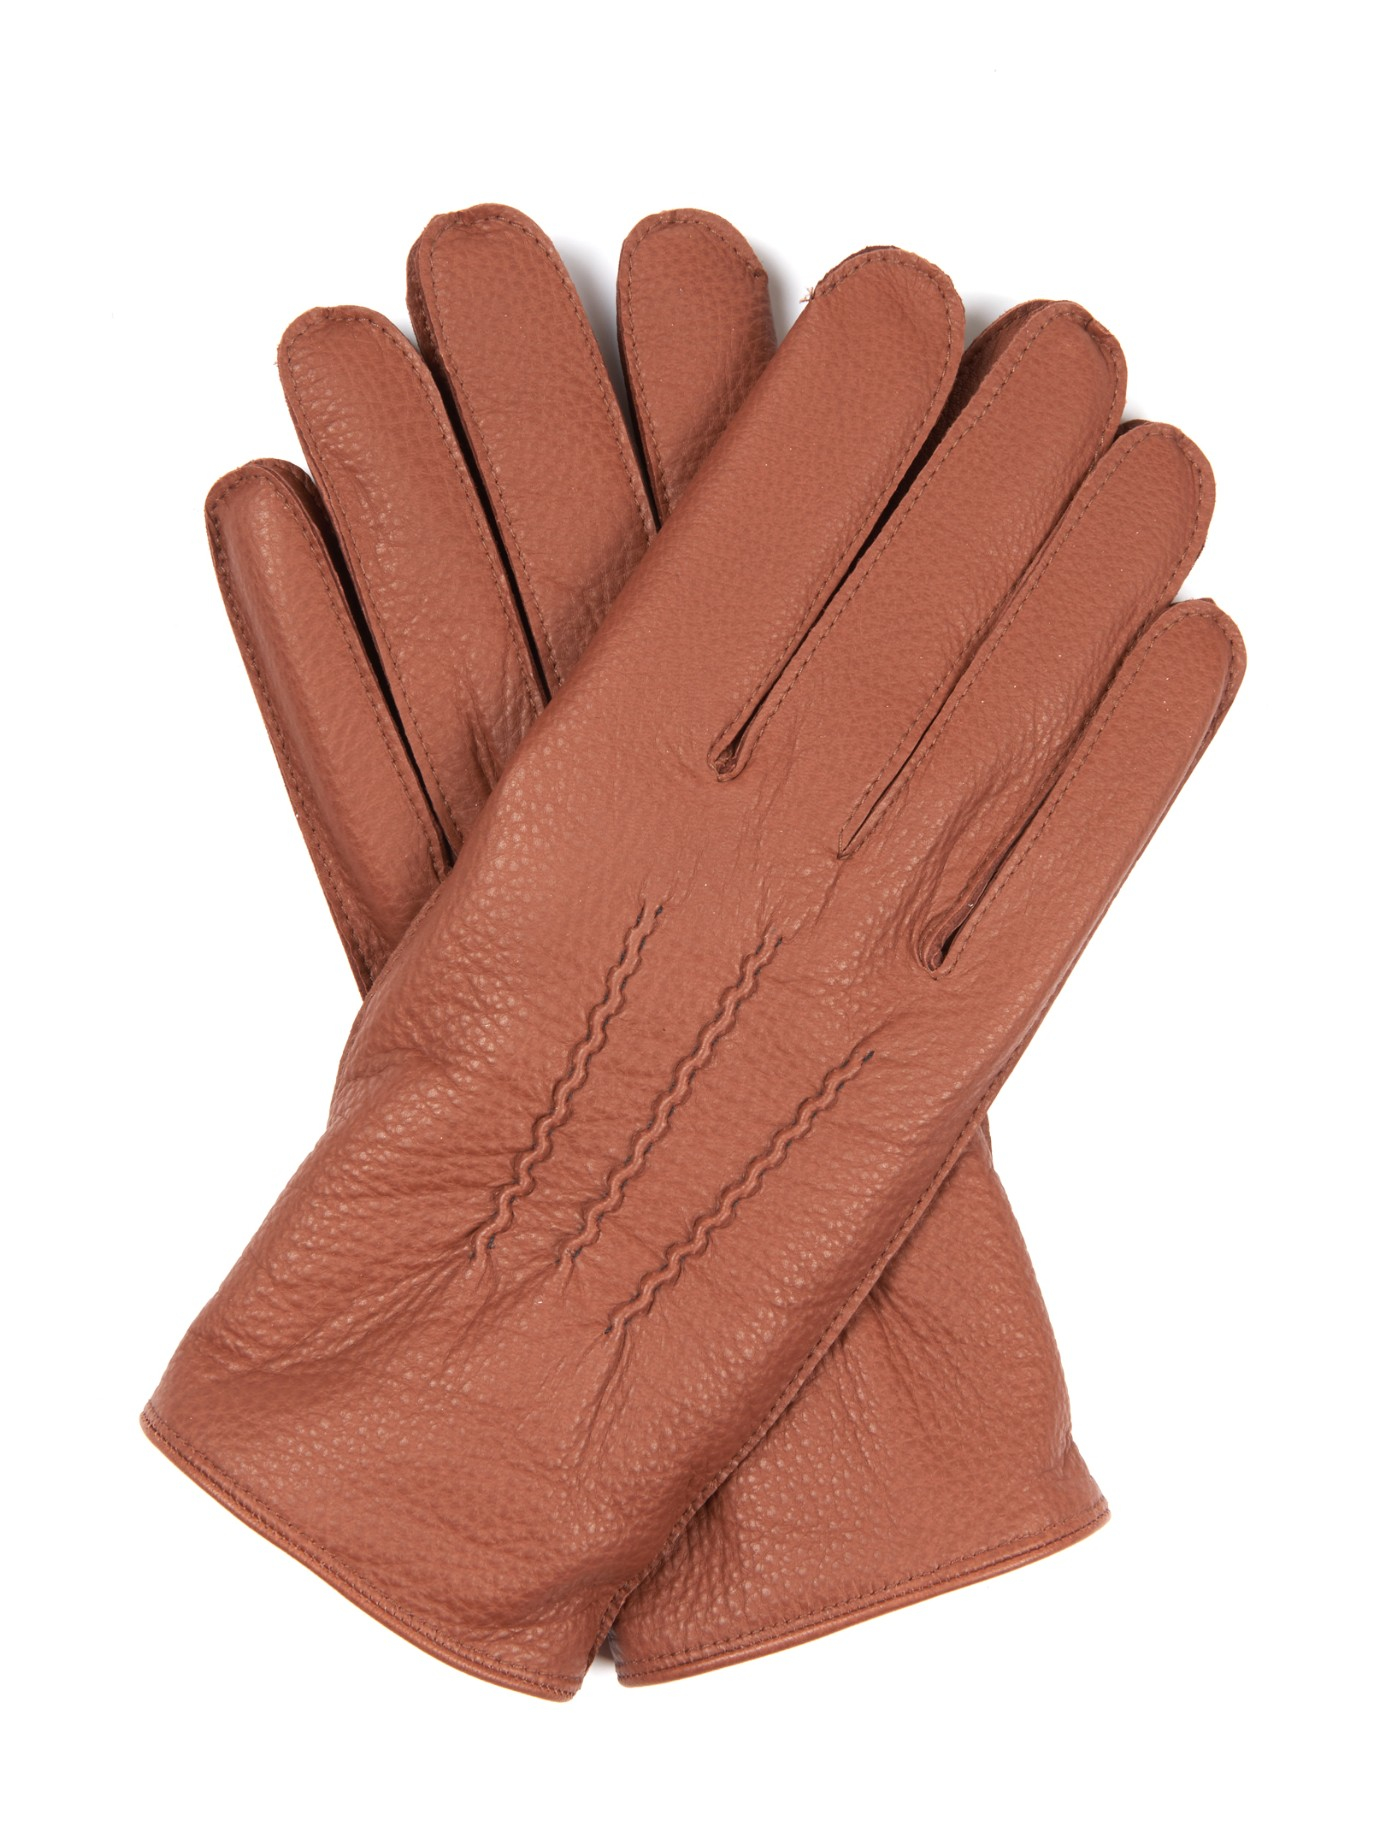 Leather mens gloves uk - Gallery